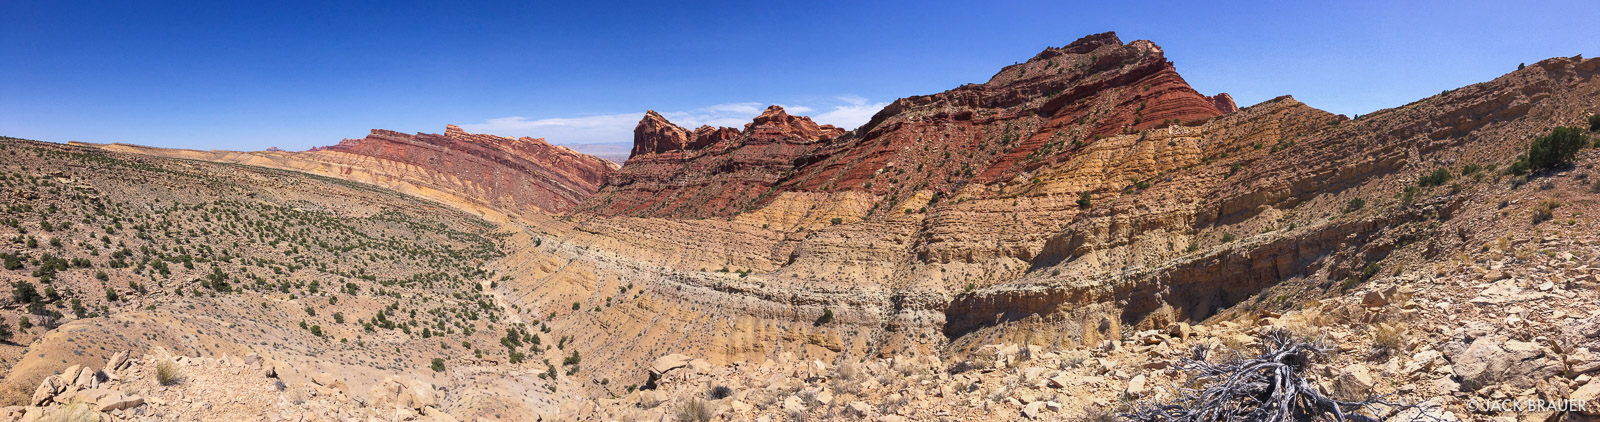 San Rafael Swell, Utah, panorama, photo